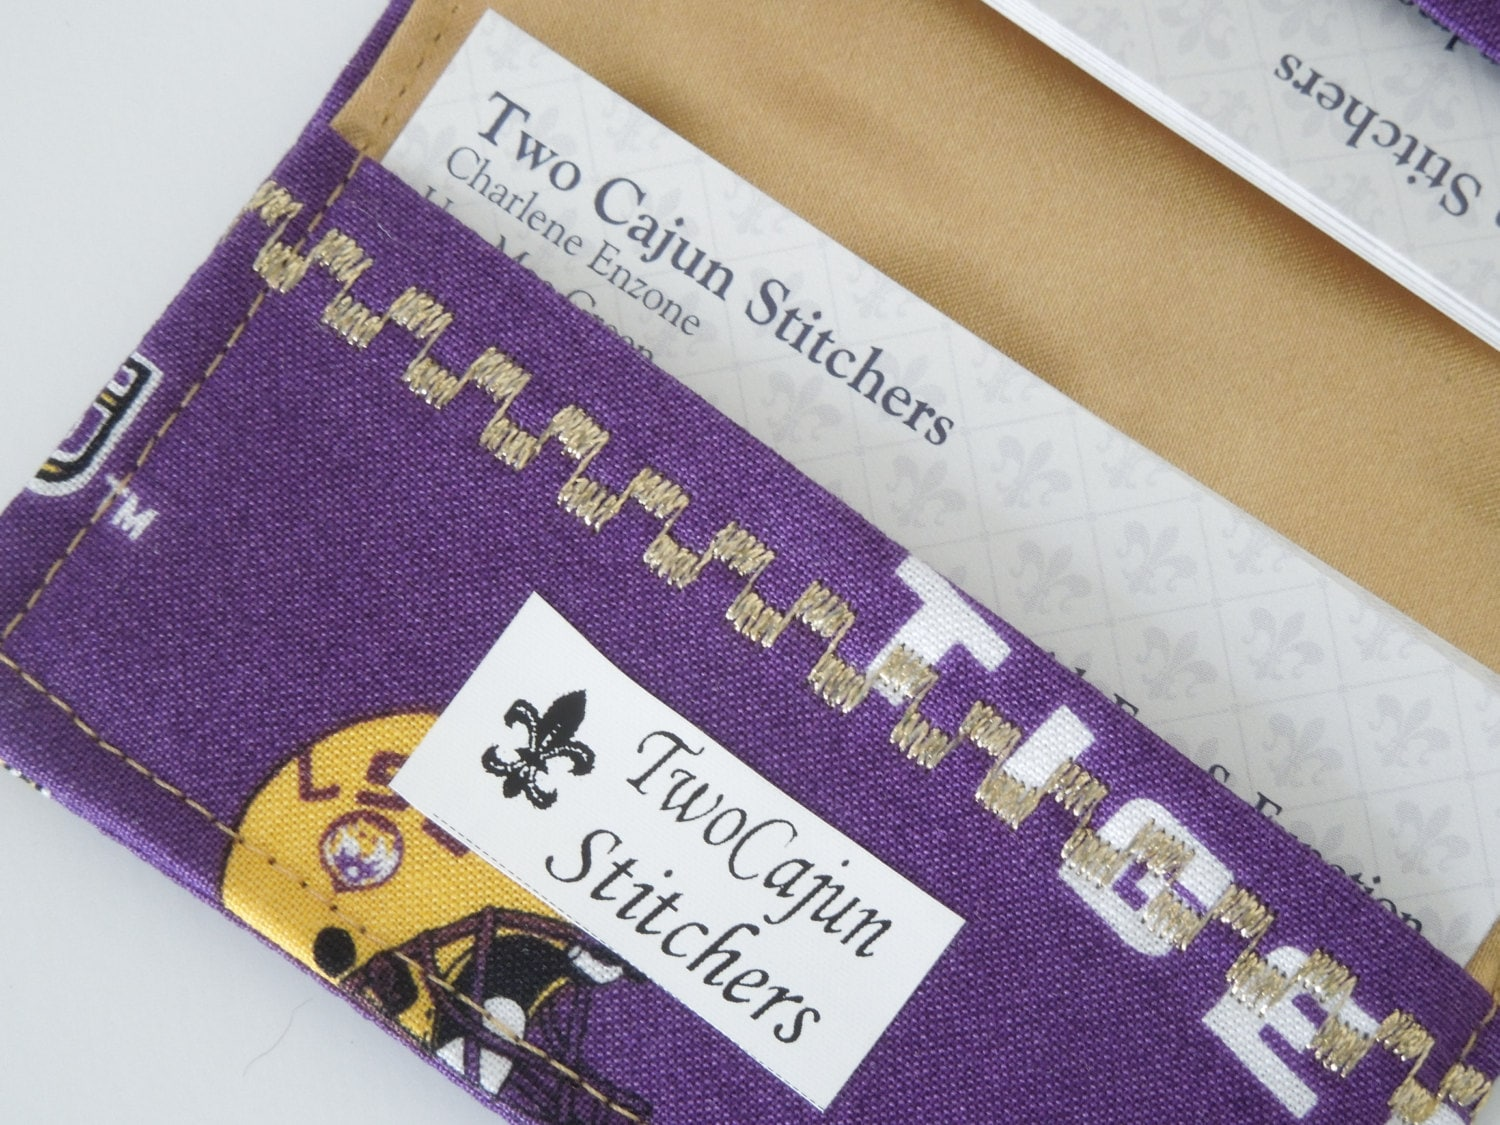 LSU Business Card or Credit Card Holder for tailgating